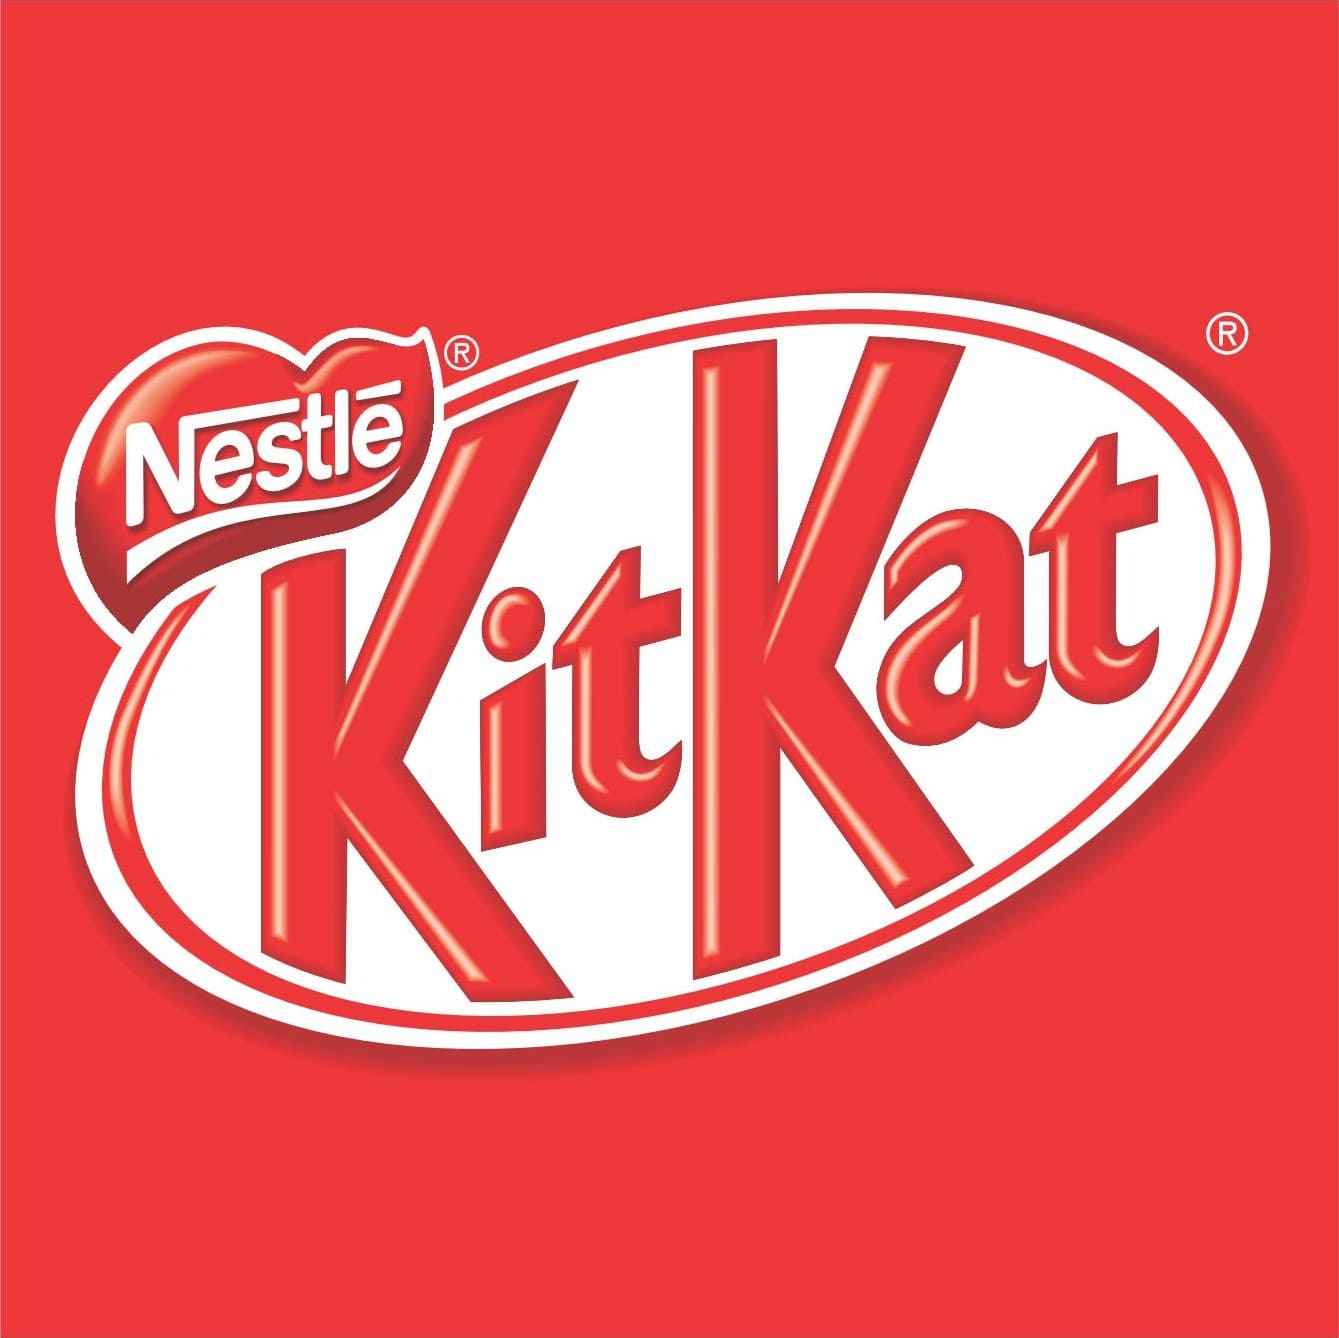 kit kat logo nestle pdf png svg download